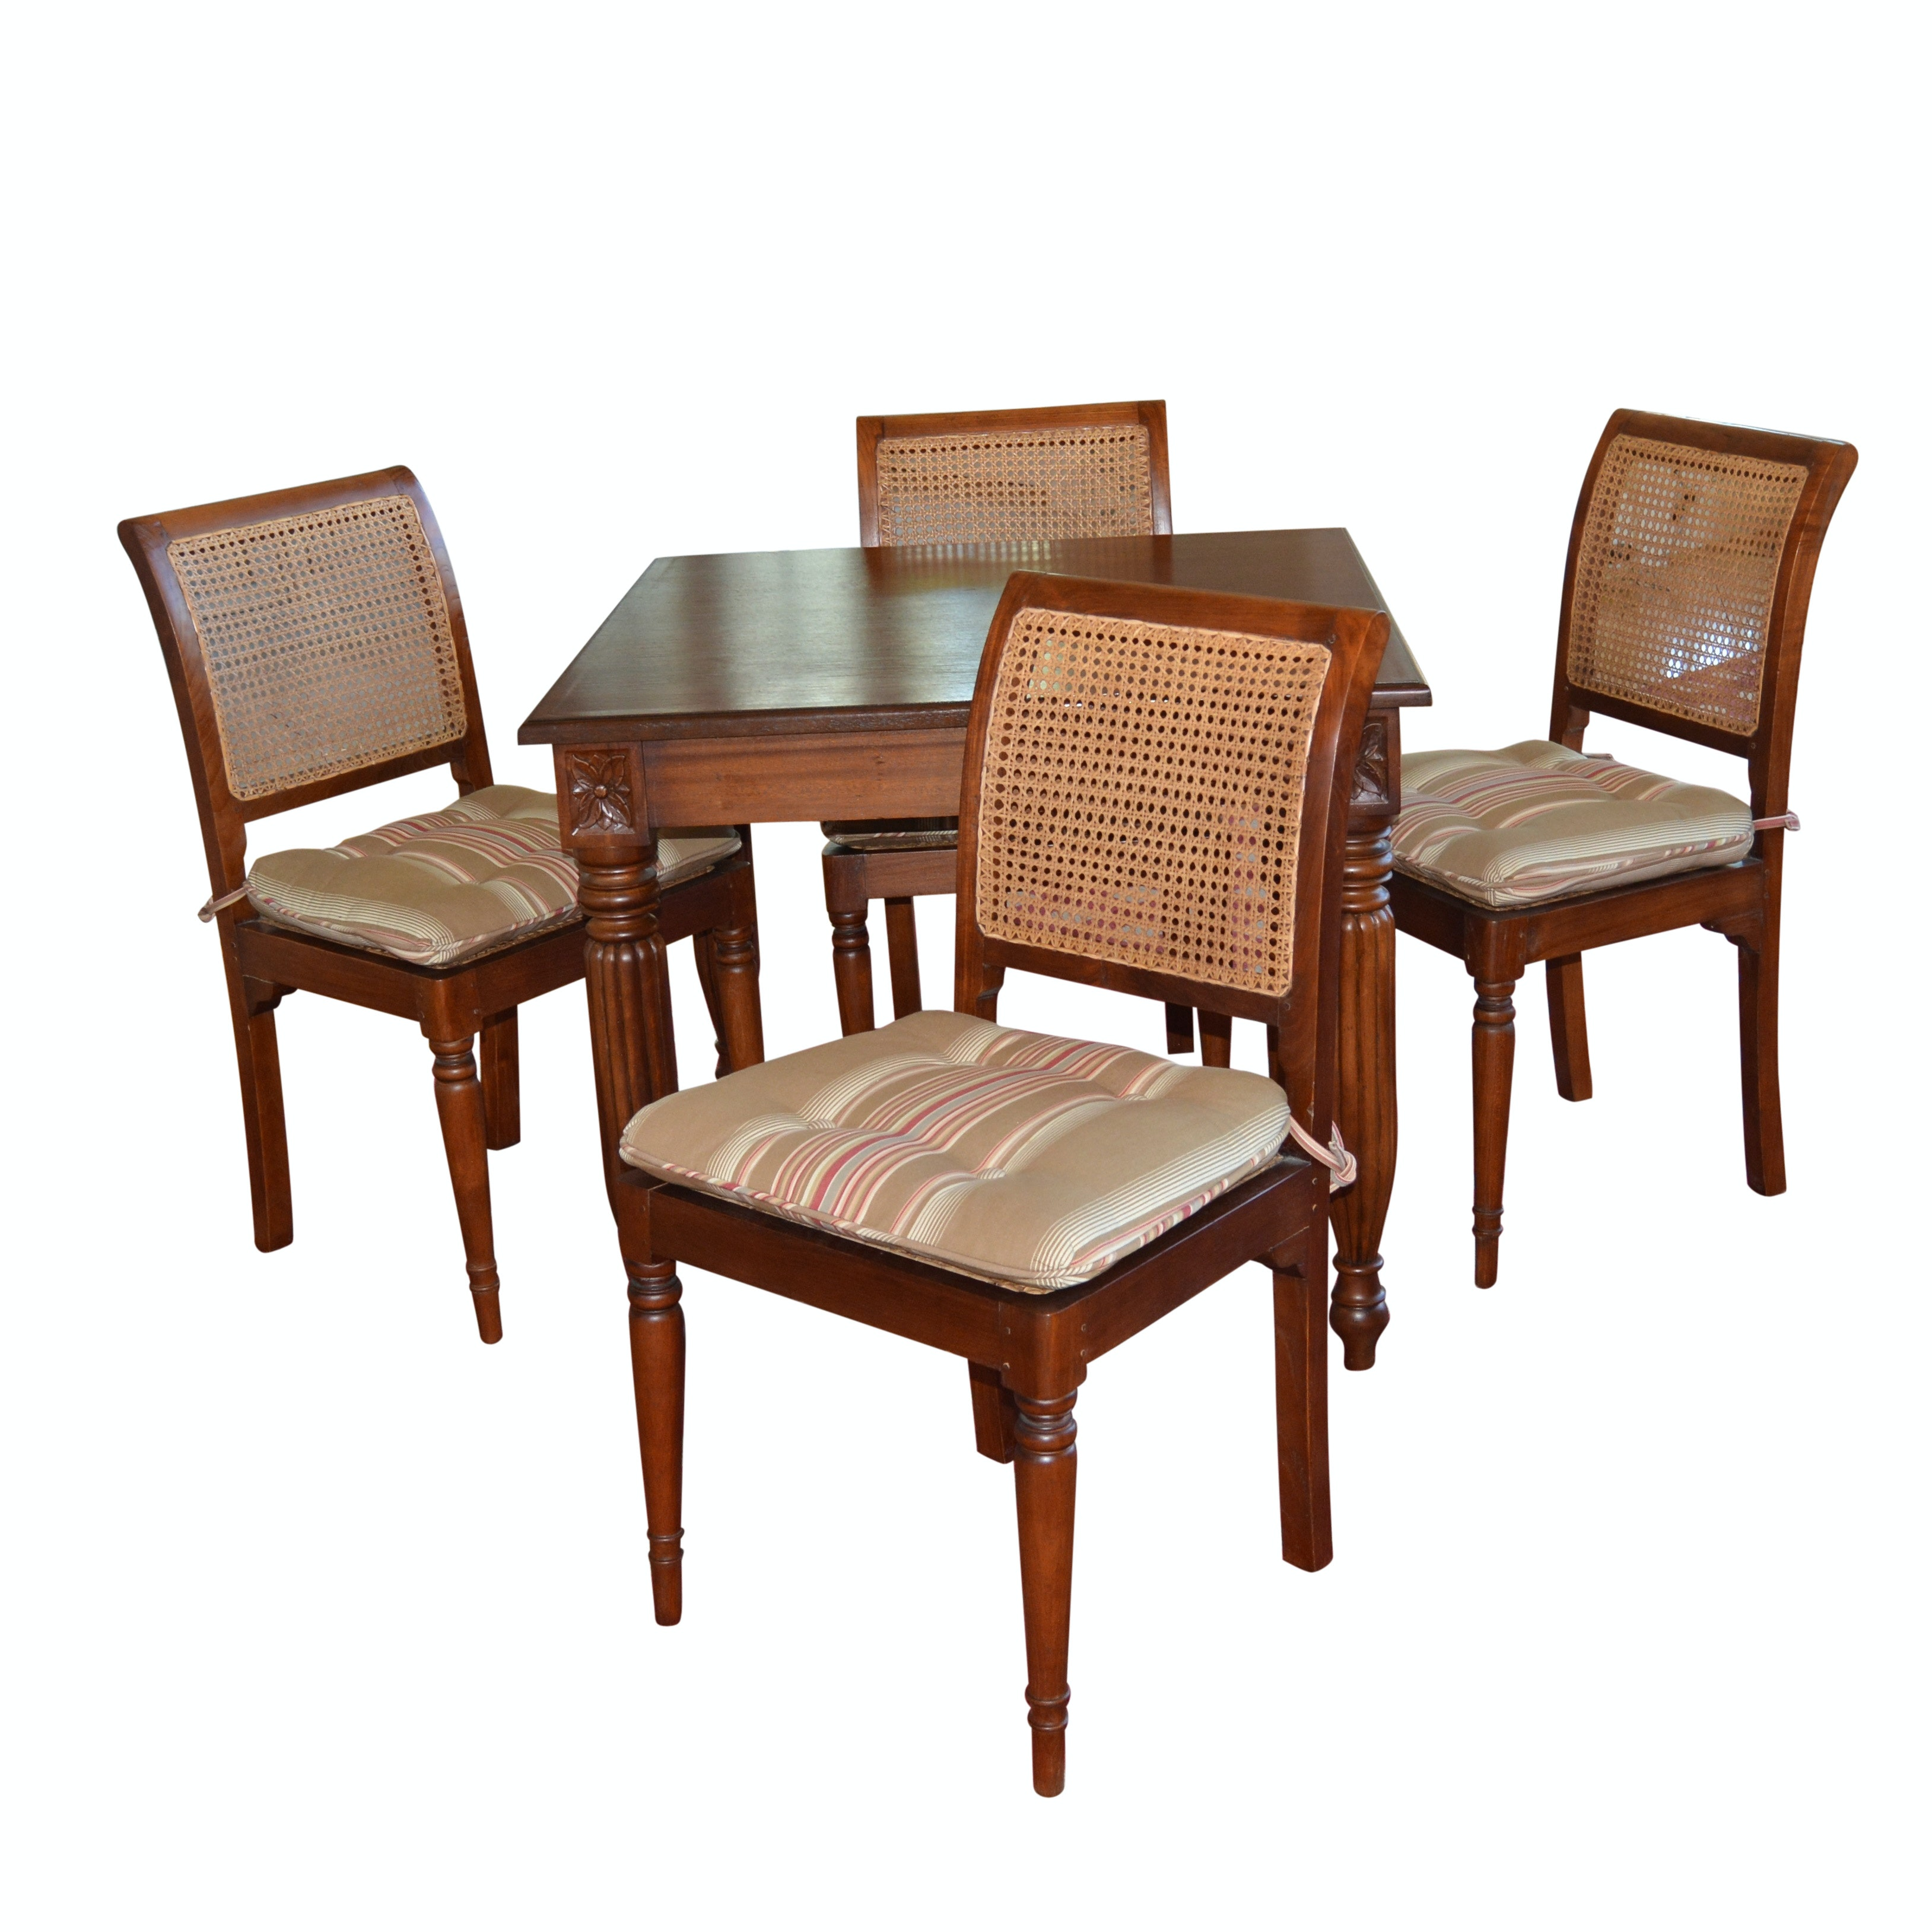 Federal Style Dining/Game Table and Cane Chairs by Mandalay, 21st Century